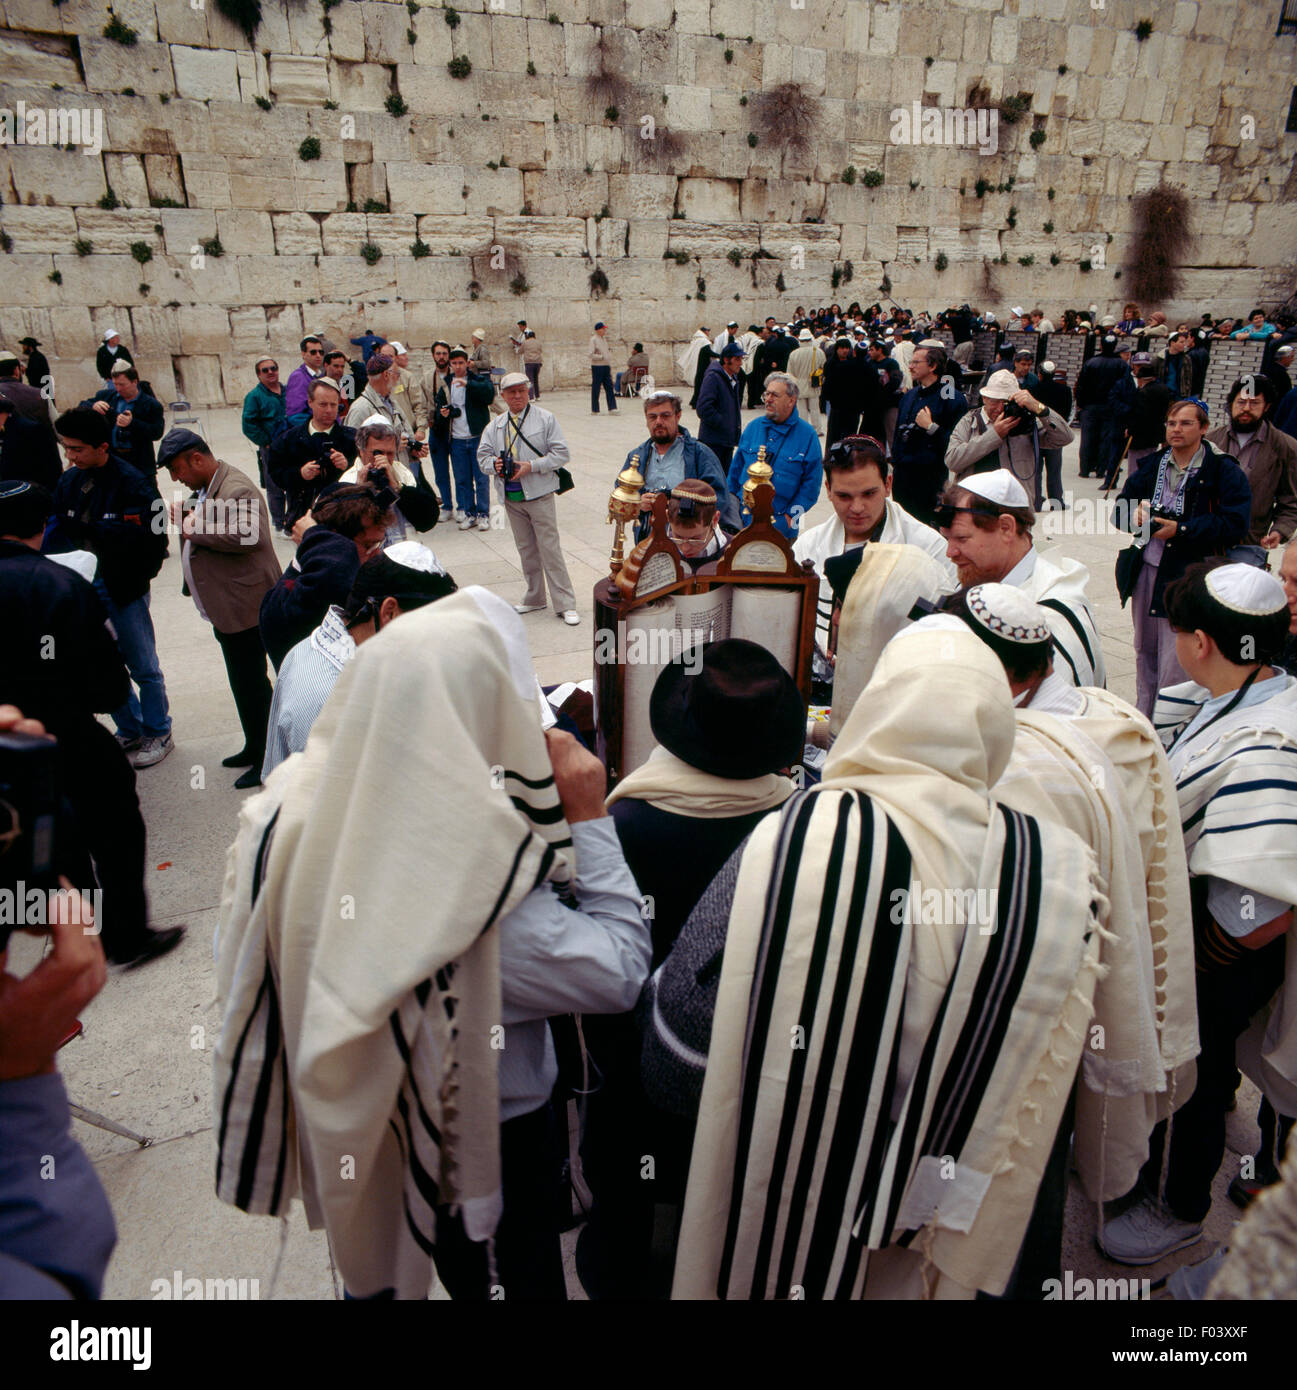 Bar Mitzvah being celebrated in front of the Wailing Wall (Western Wall), Jerusalem, Israel. - Stock Image